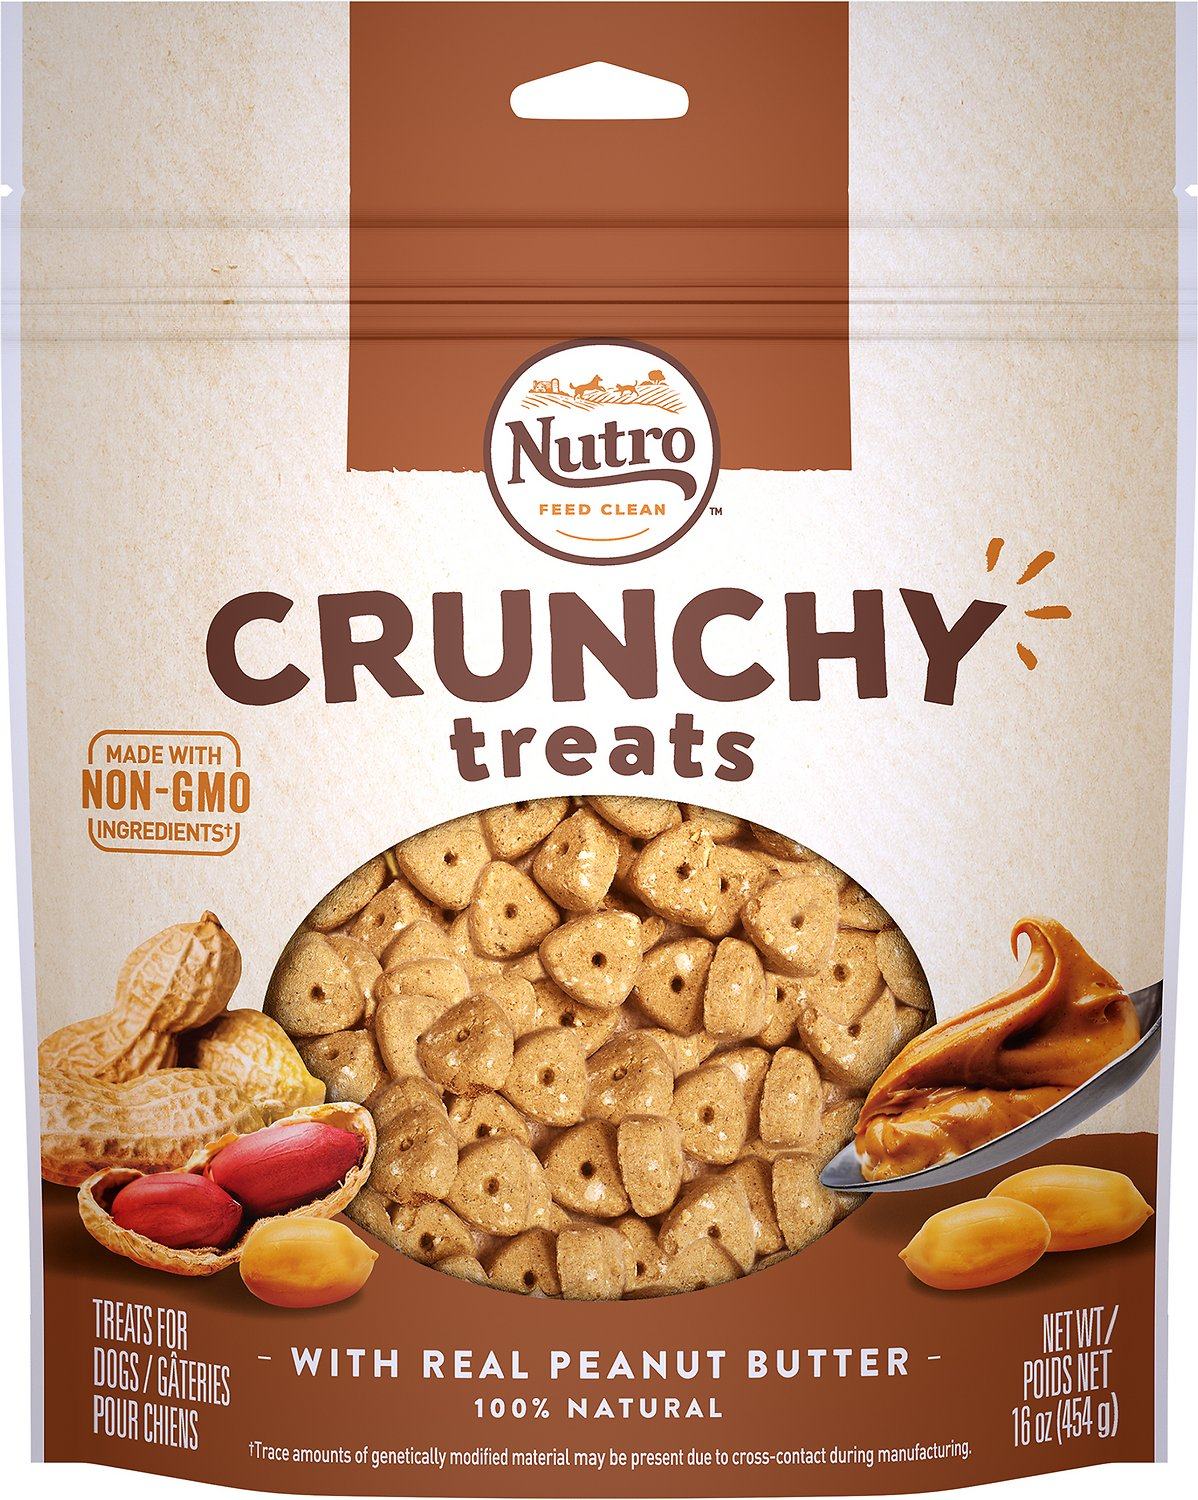 Nutro Crunchy with Real Peanut Butter Dog Treats Image